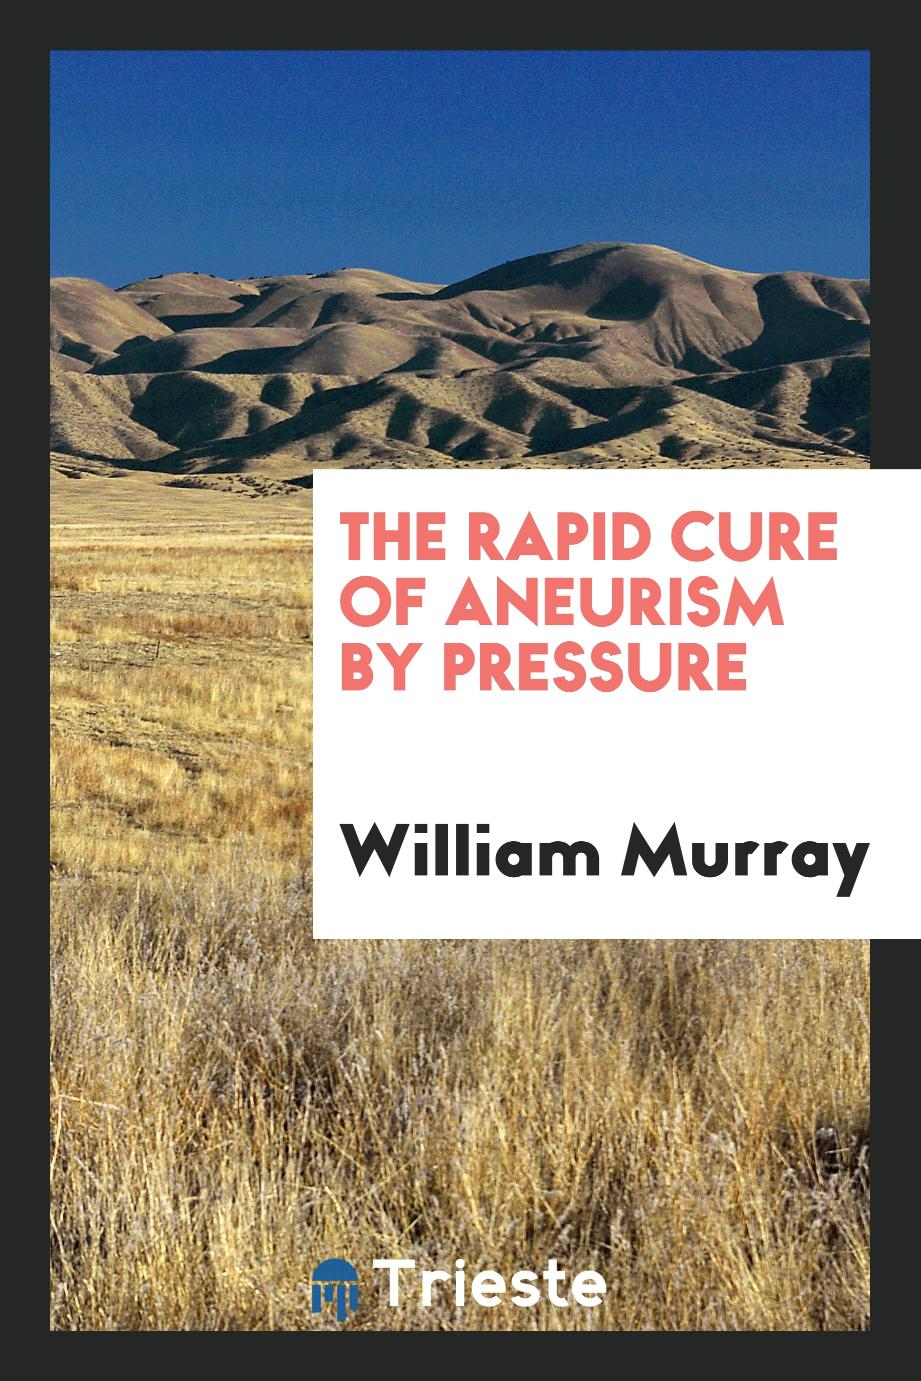 The rapid cure of aneurism by pressure